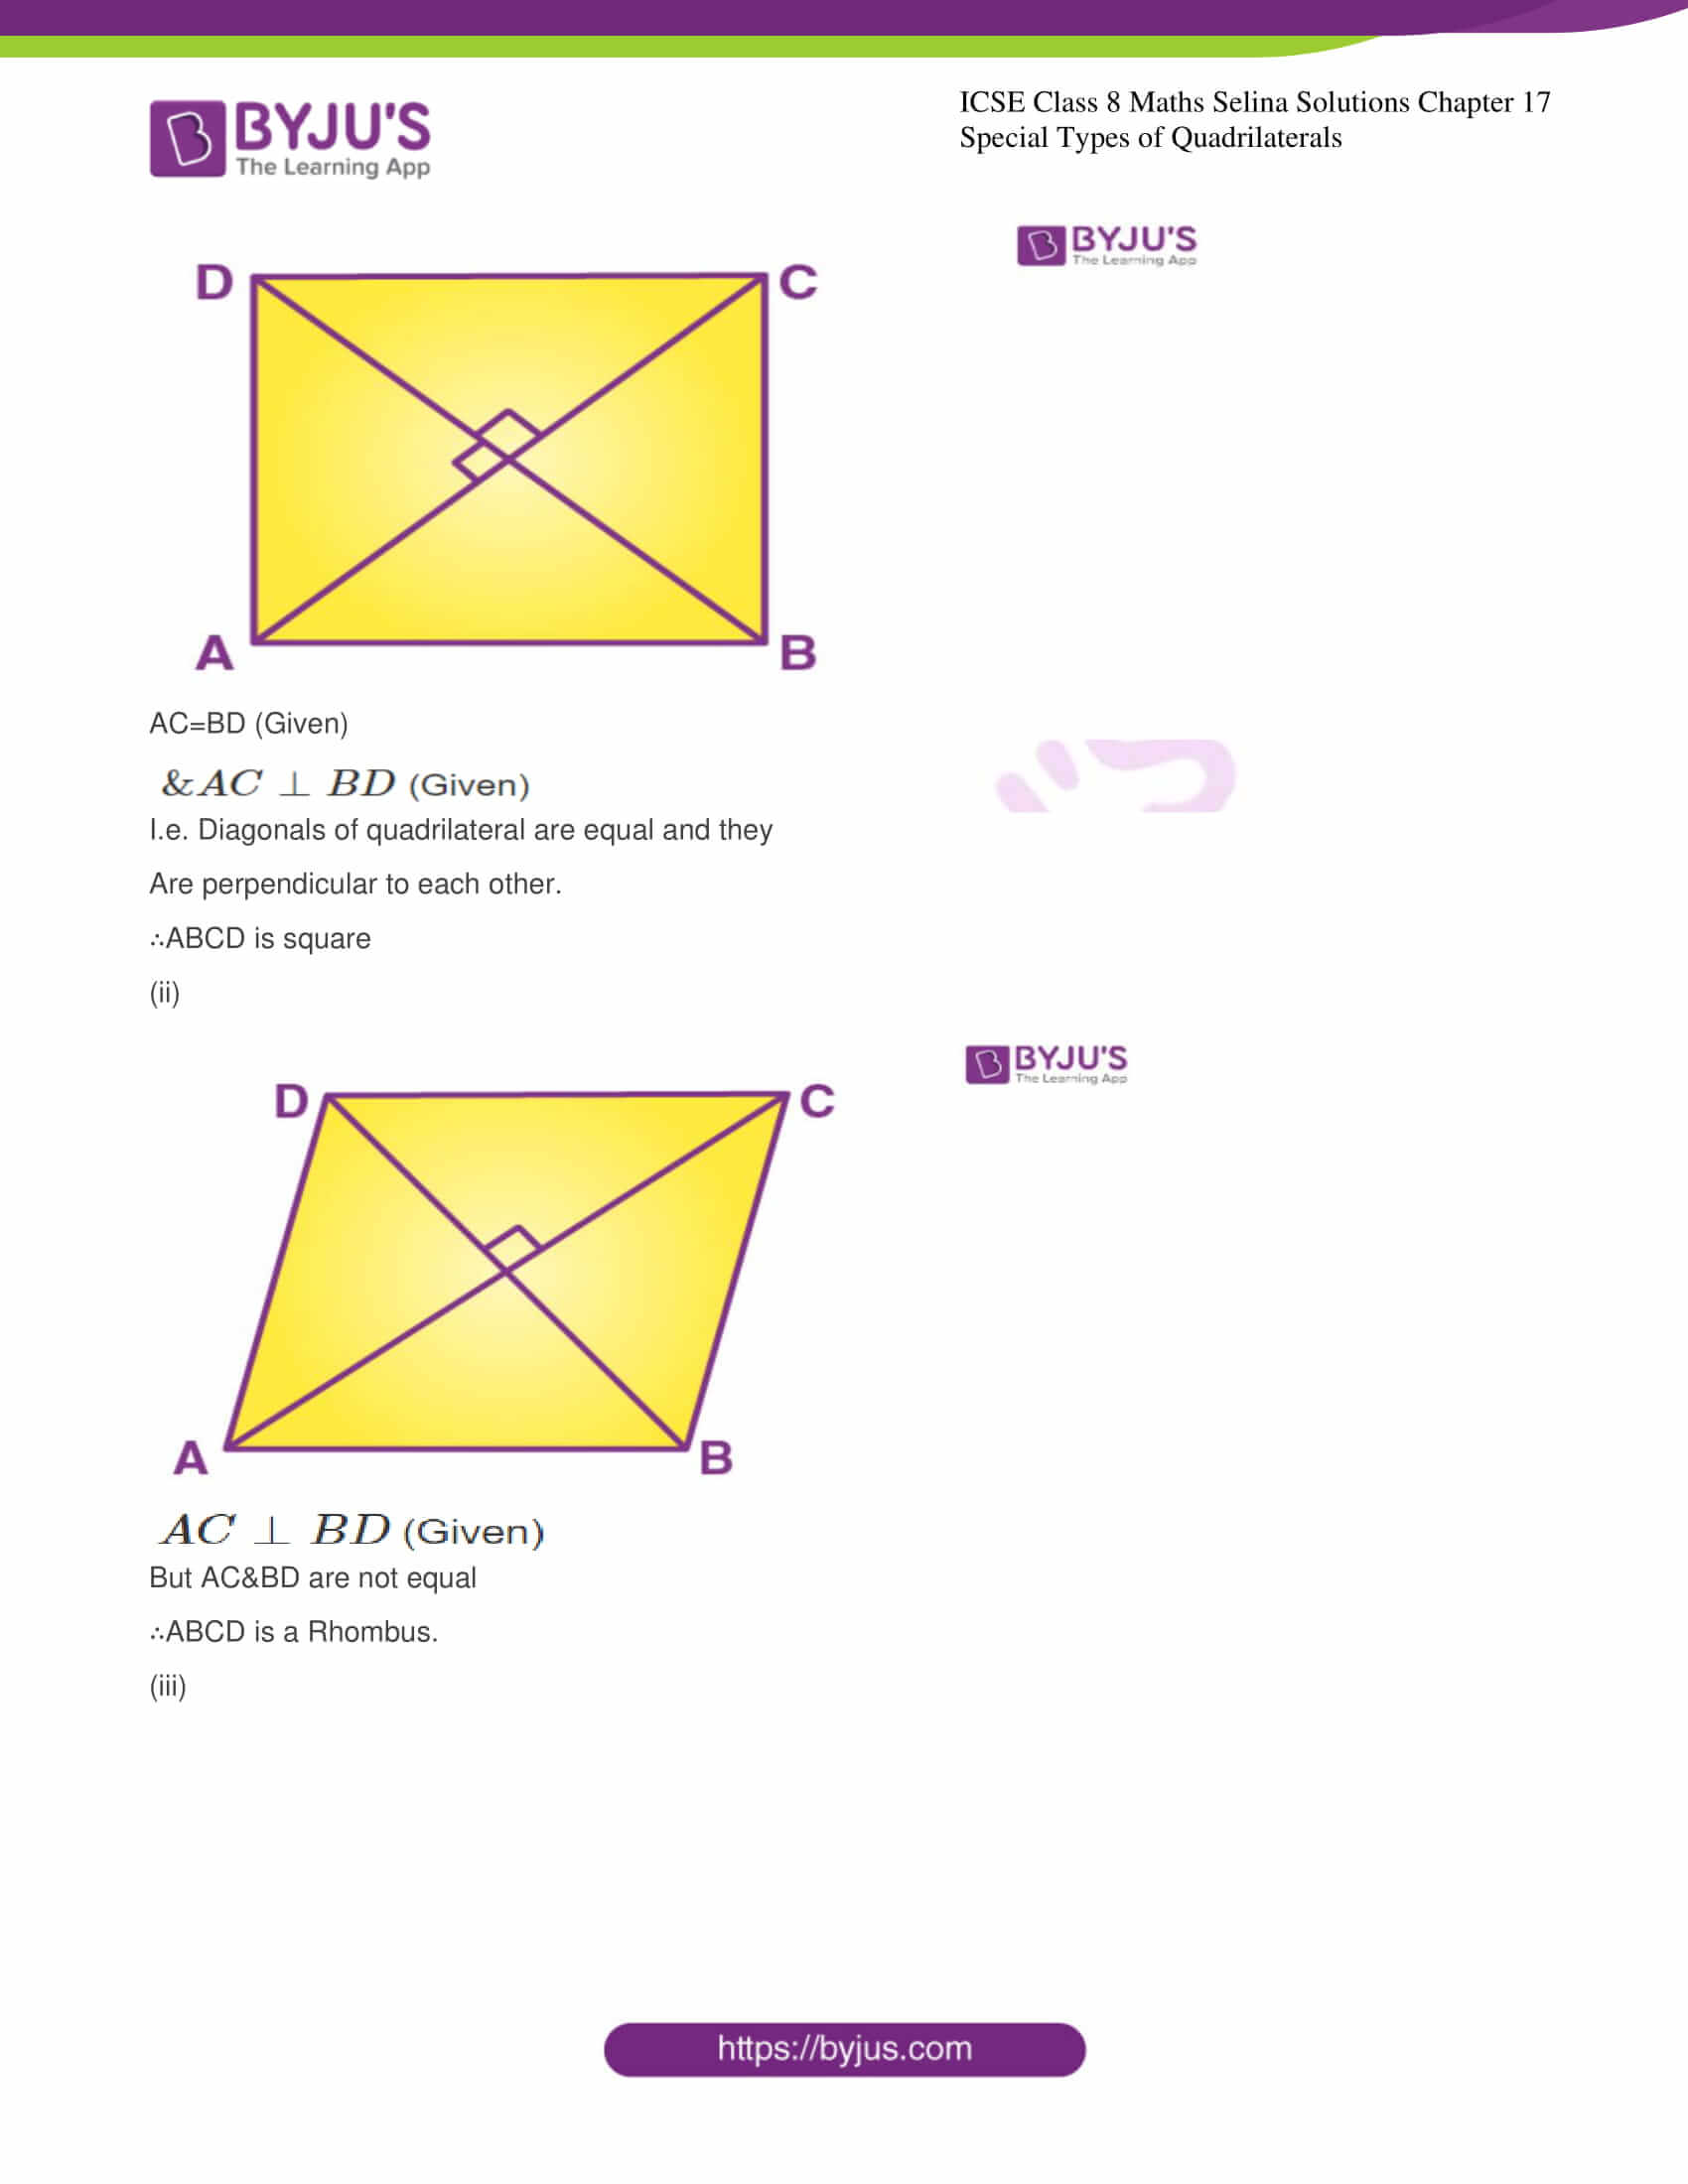 icse class 8 maths may3 selina solutions chapter 17 special types of quadrilaterals 10